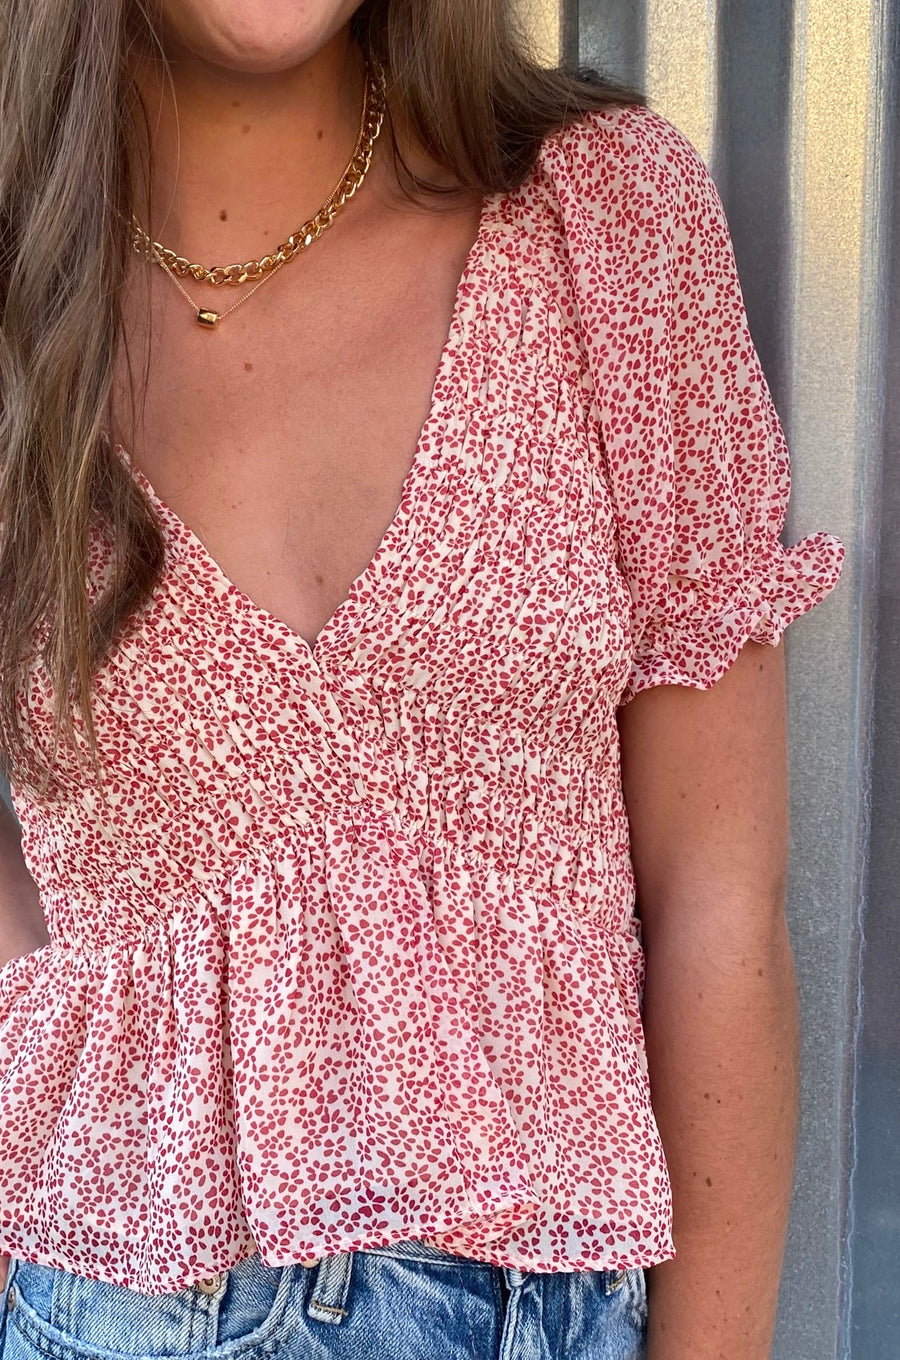 Raspberry Fields Floral Top